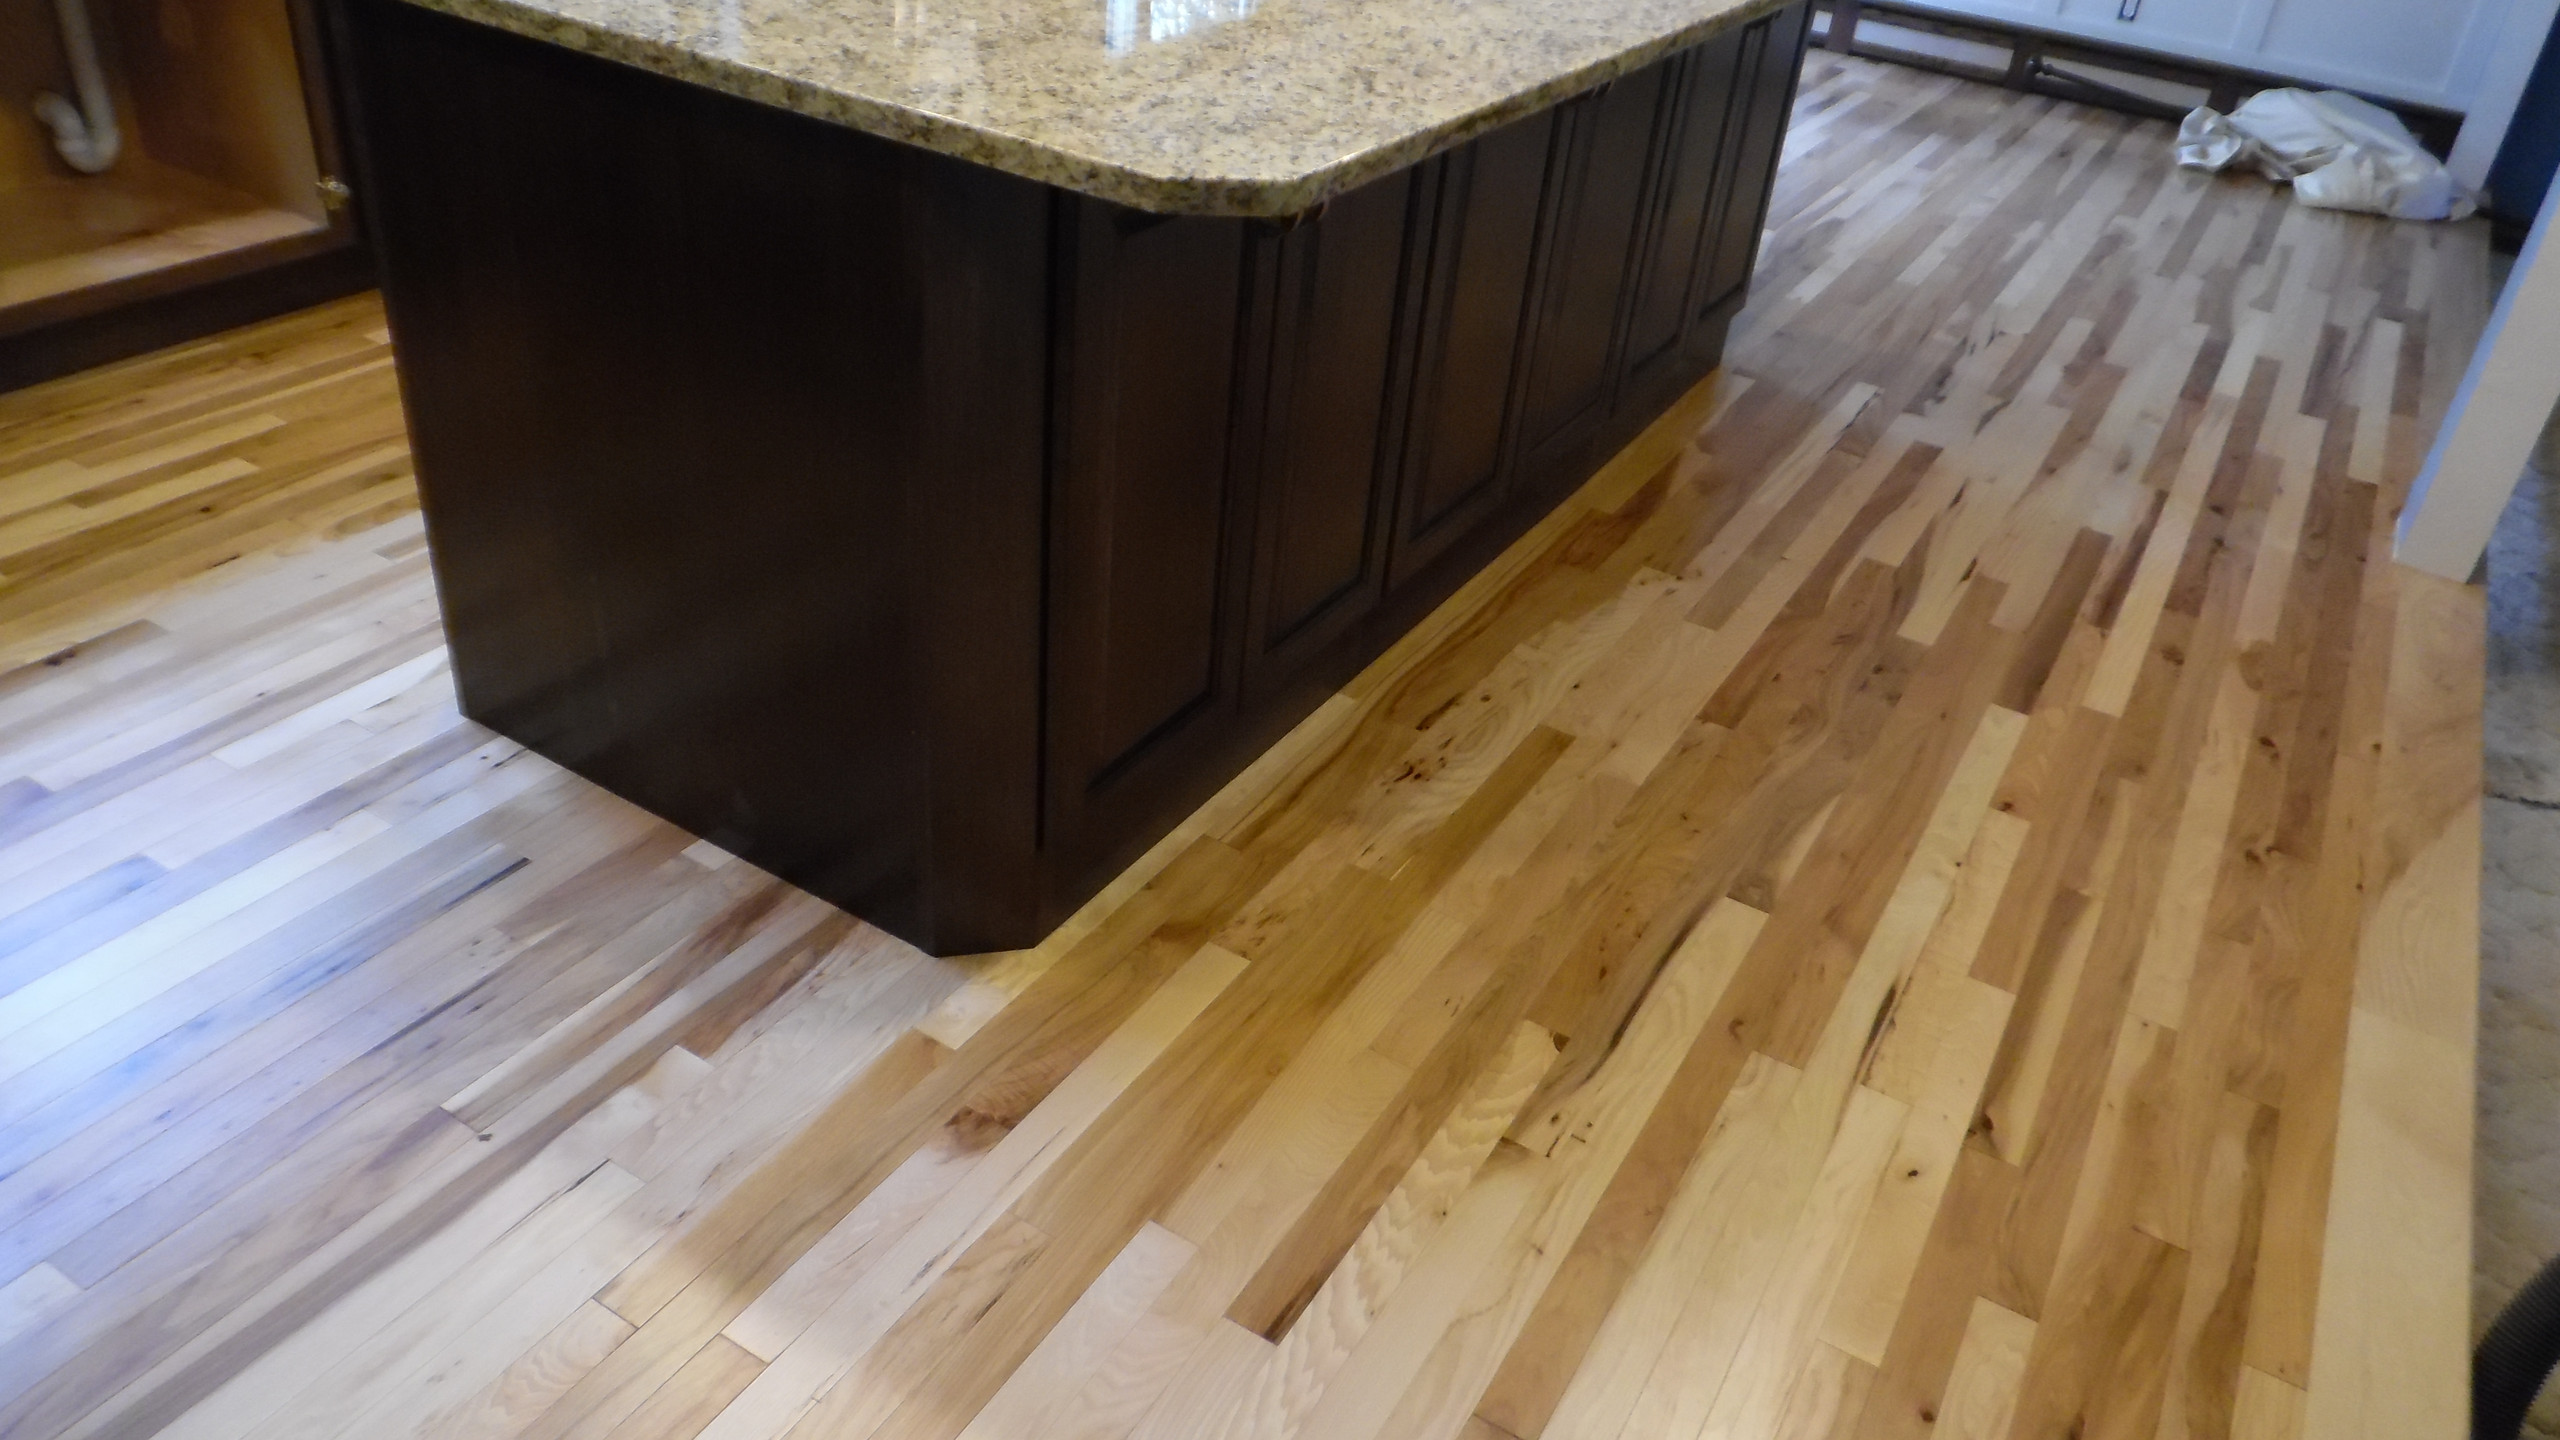 Granite, Cabinets, Hickory Floor (23)